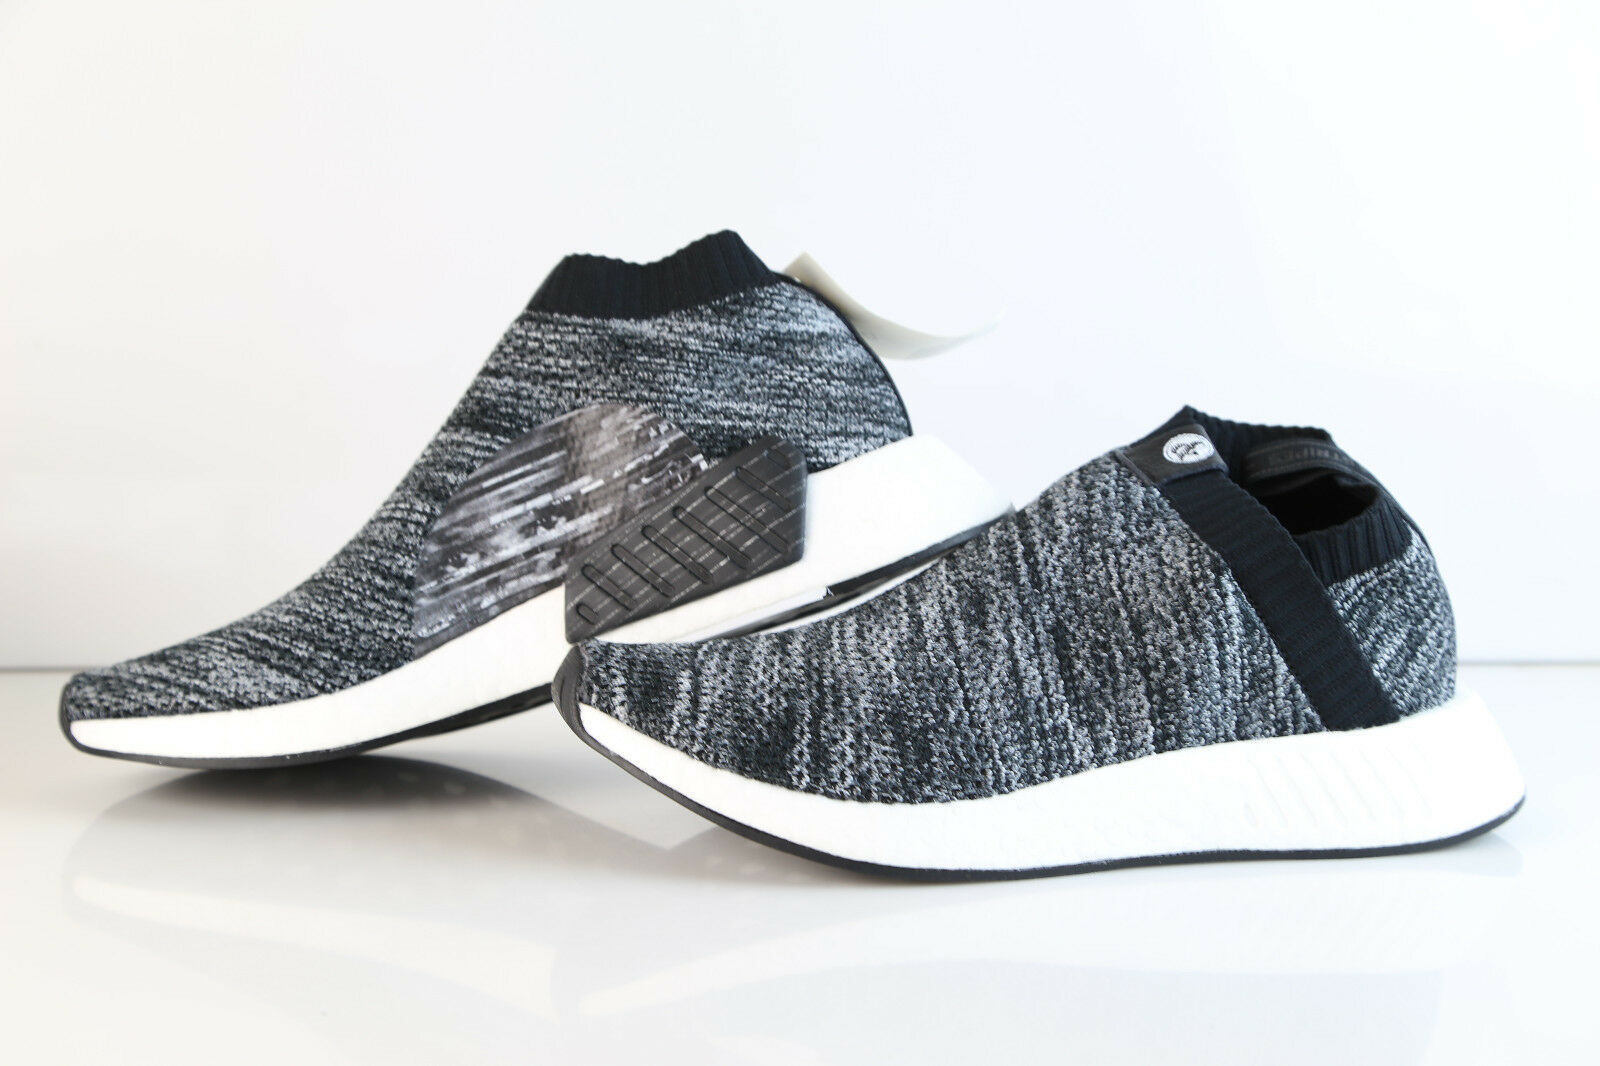 Preview: adidas NMD City Sock 2 PK x United Arrows & Sons